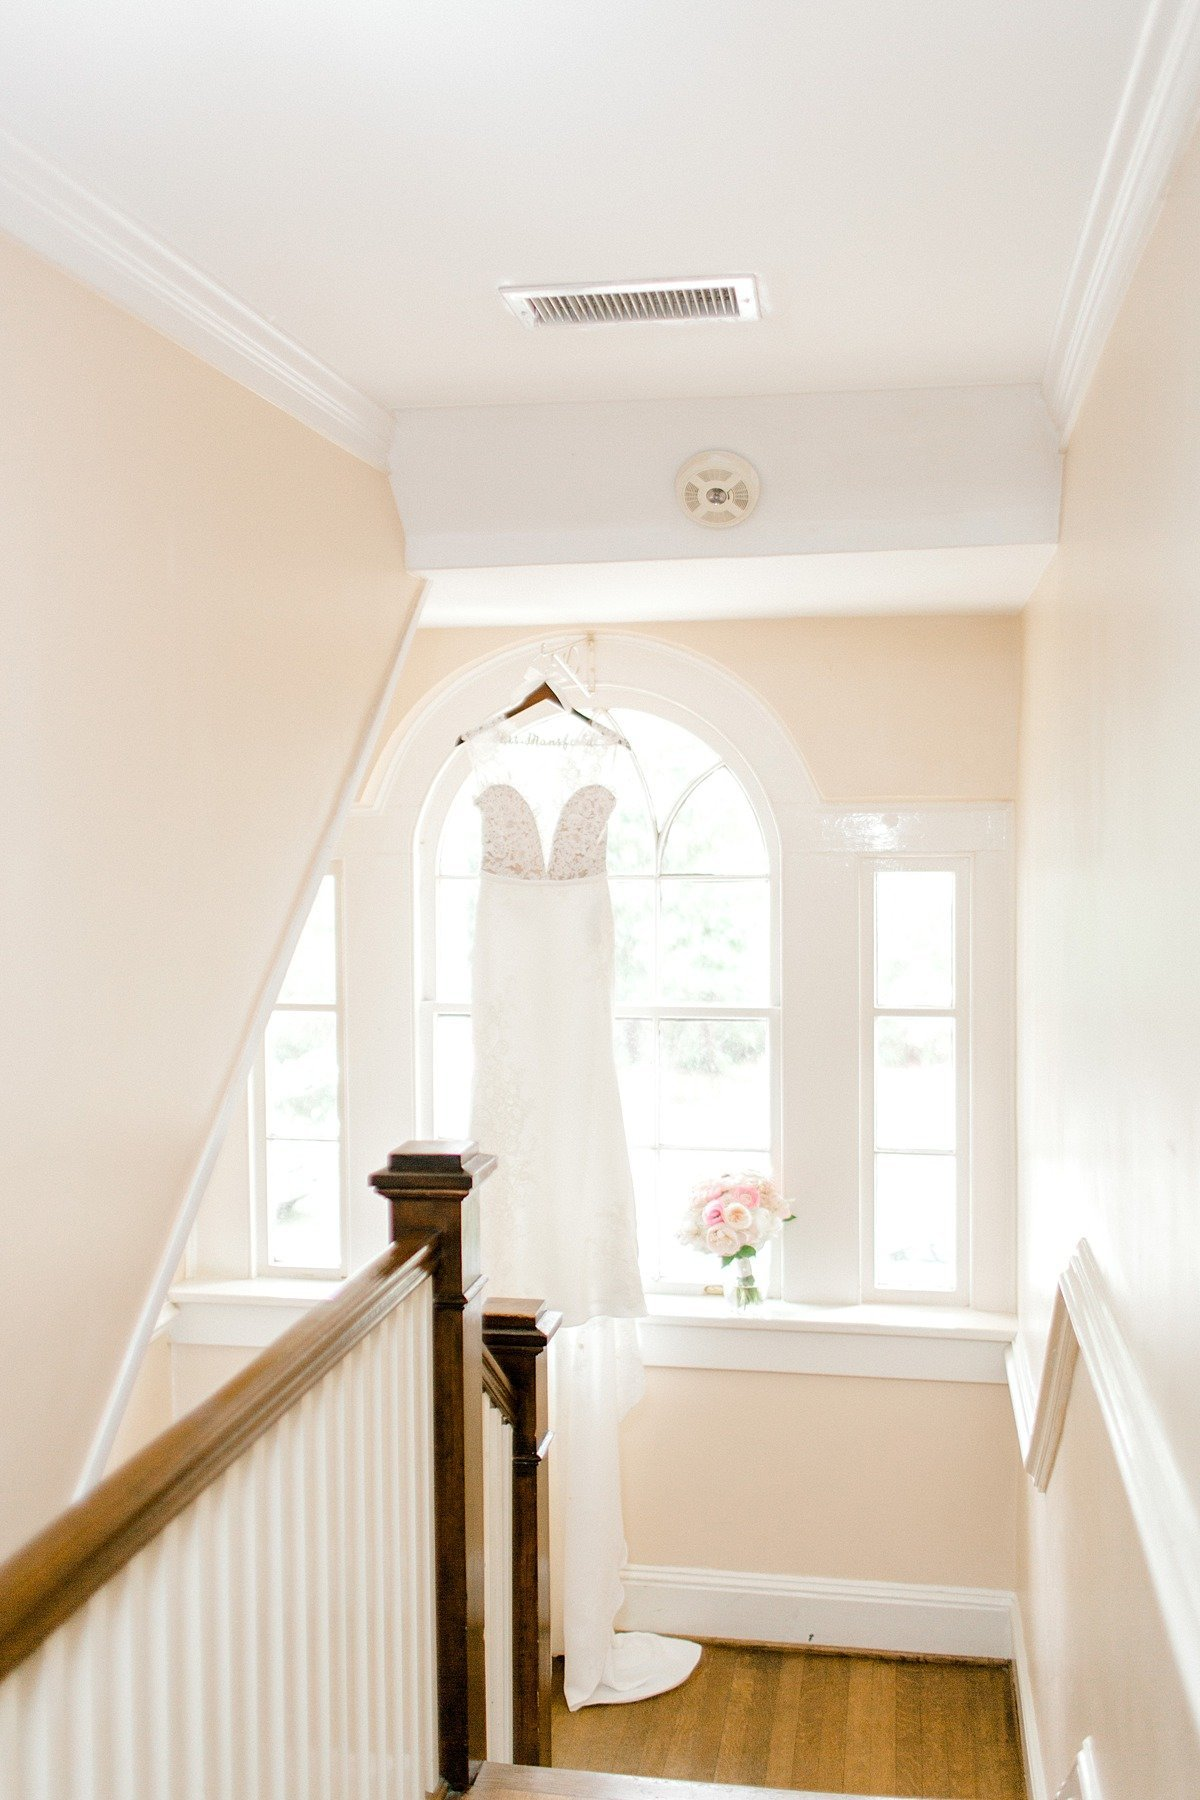 L&M Spring Pink Floral Abilena Plantation Indoor Wedding New Bern NC Andrew & Tianna Photography-83